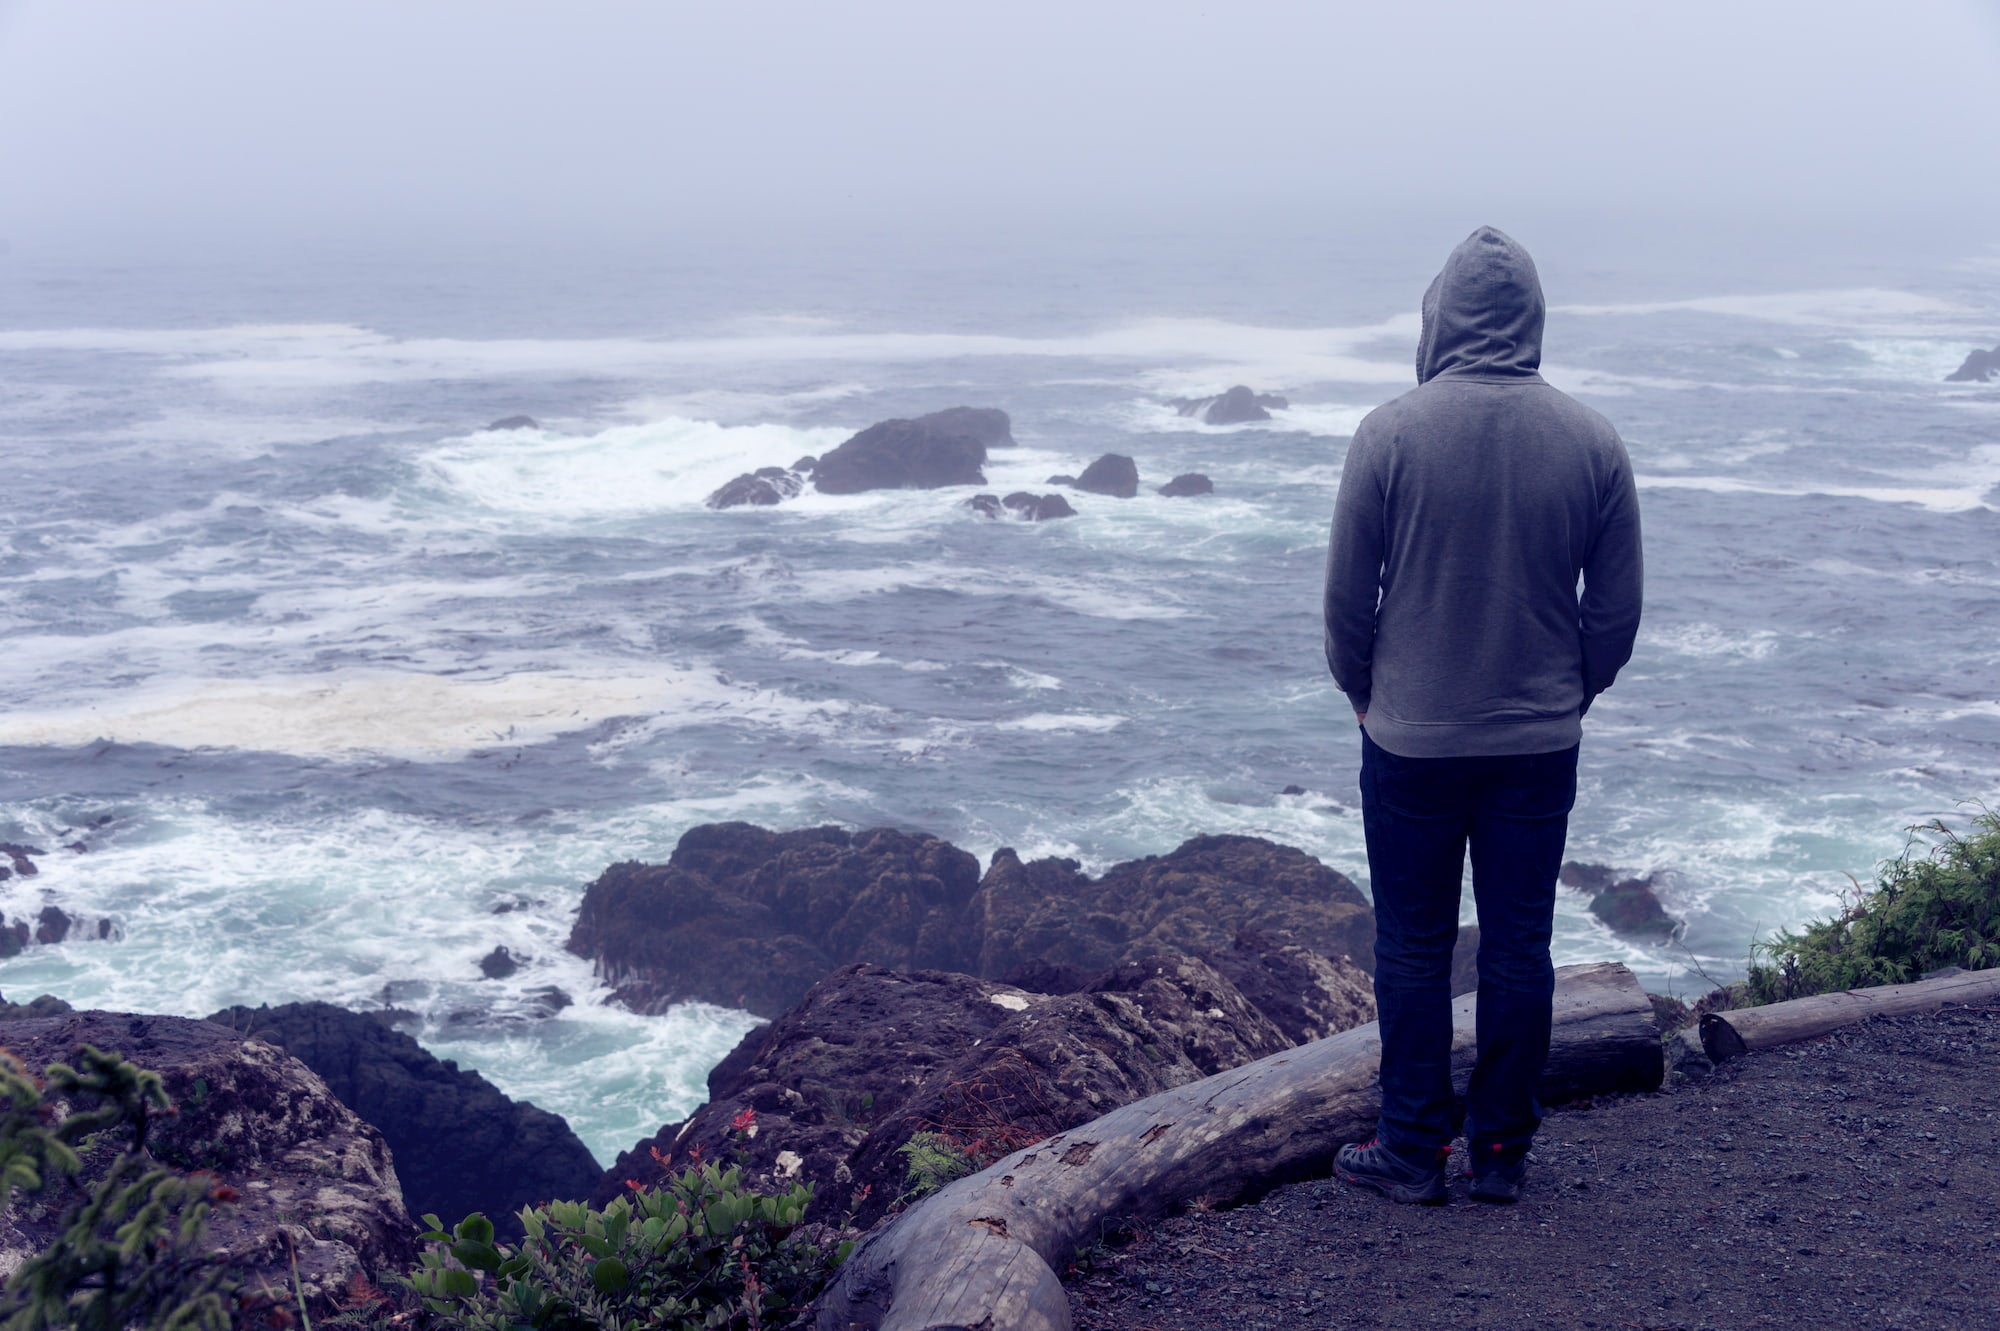 Person looking out at the ocean on a stormy day.